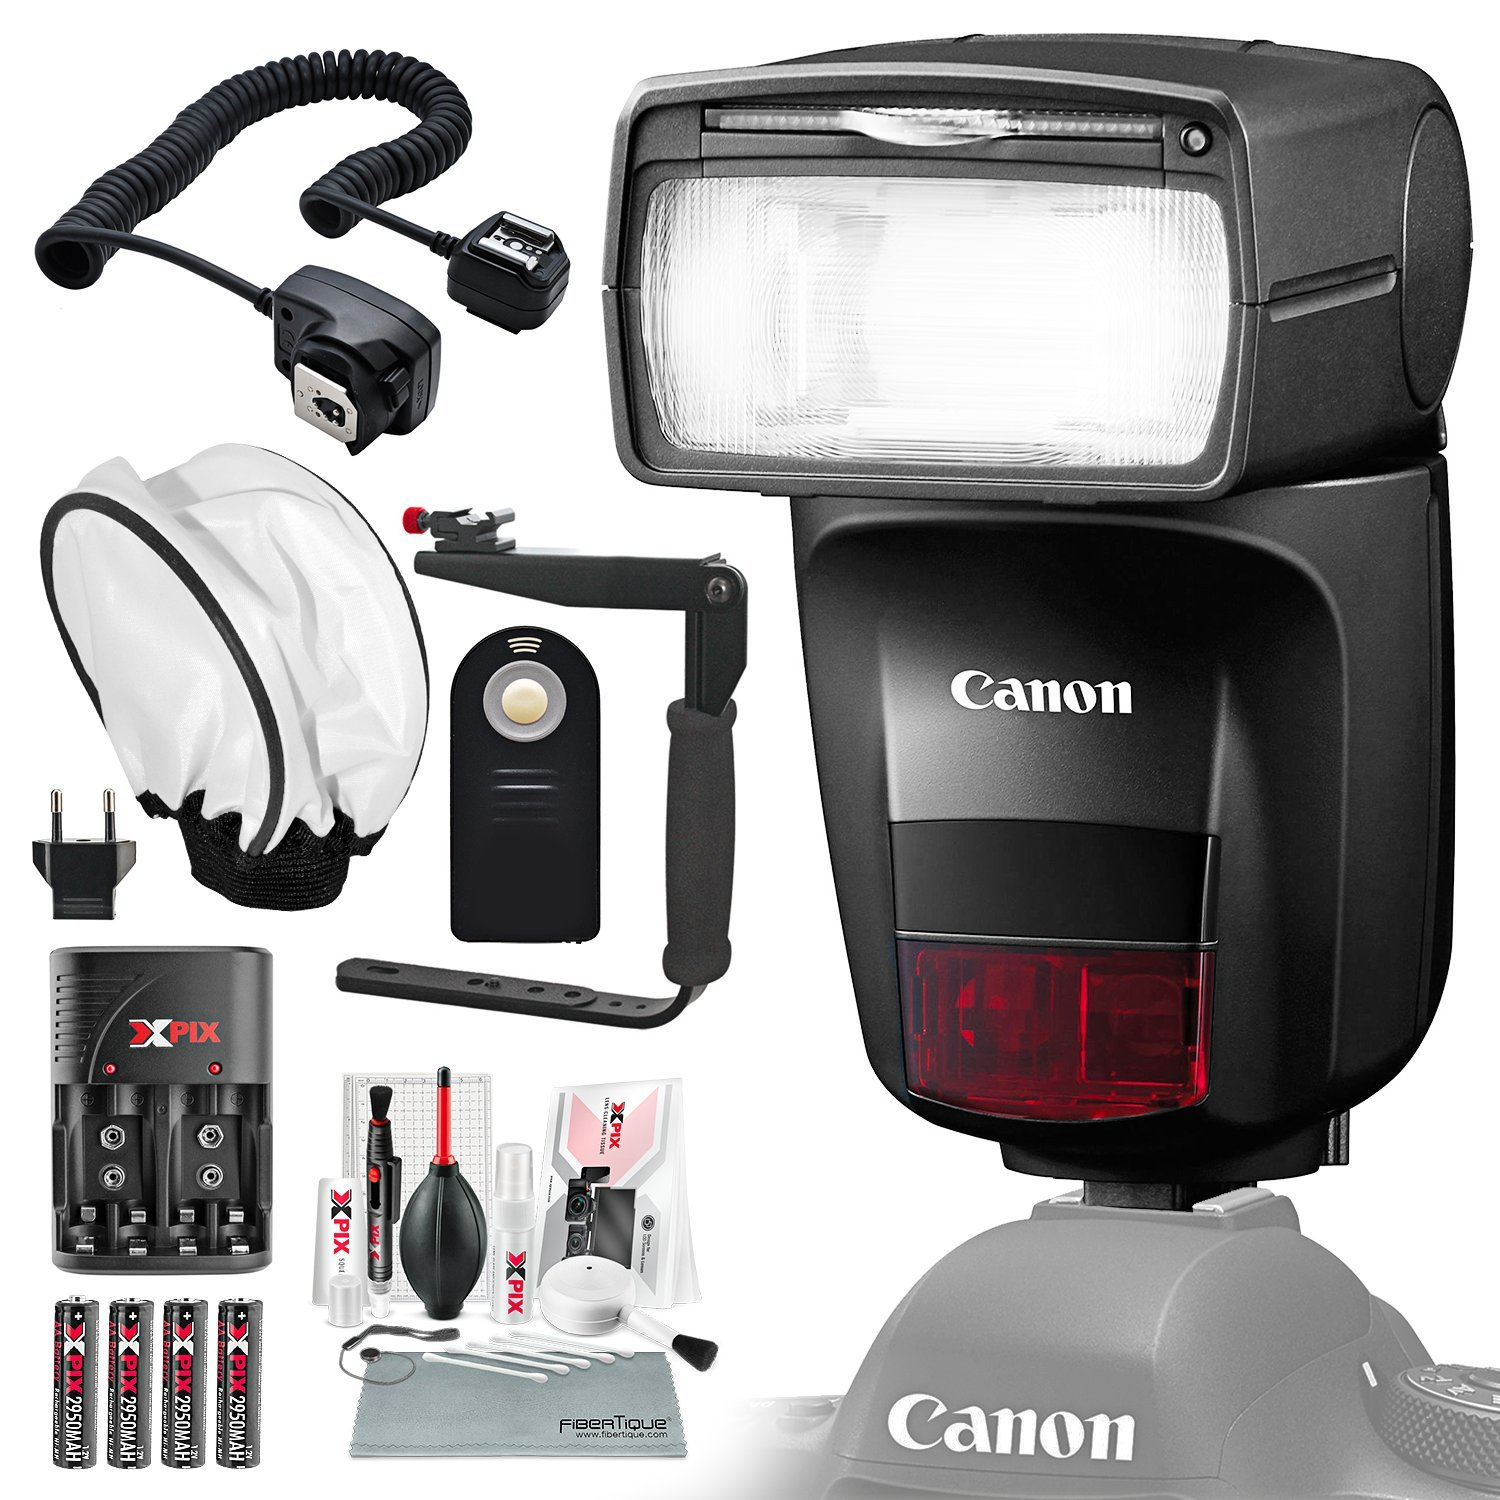 Canon Speedlite 470EX-AI Flash with Diffuser, Batteries & Charger Kit, Xpix Cleaning Accessories, and Basic Photo Bundle by Canon